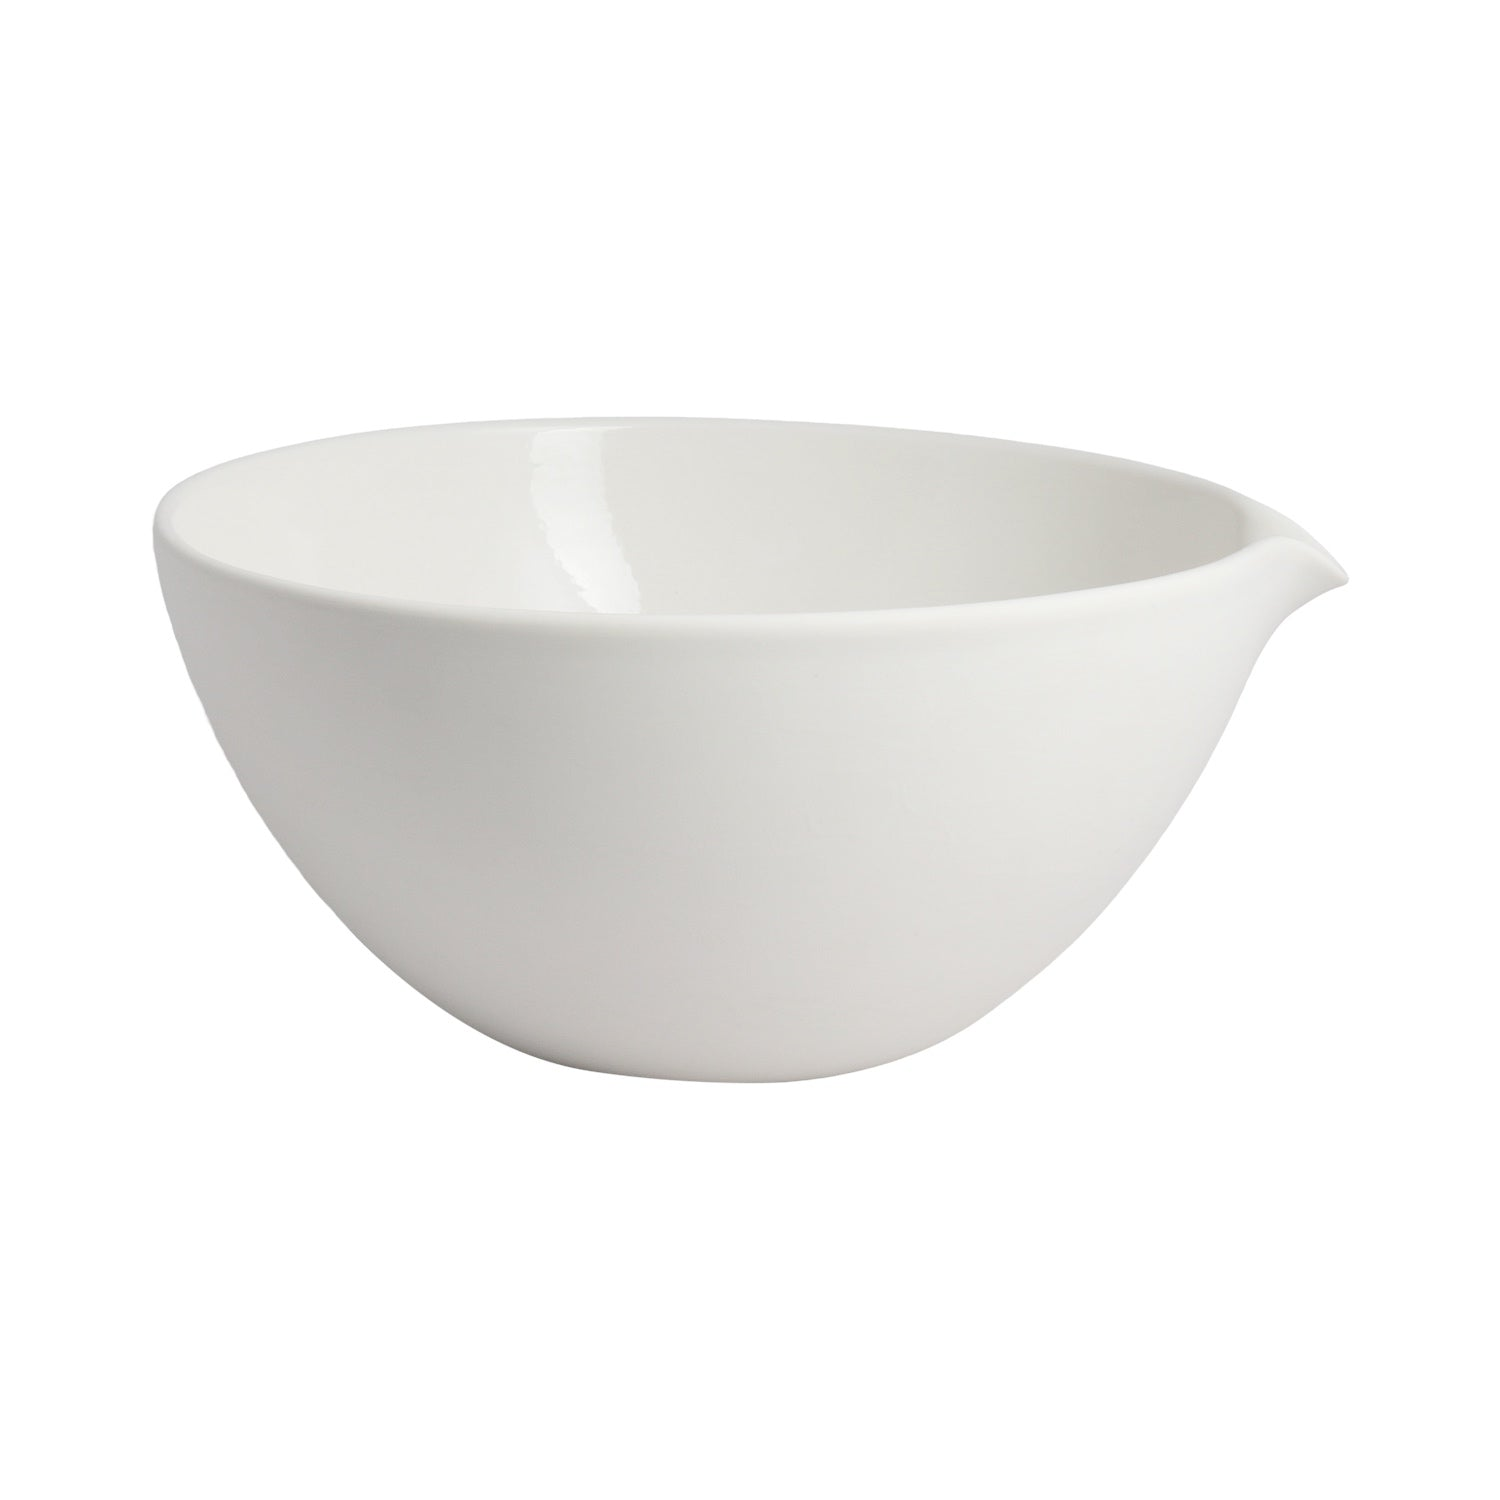 Extra Large Pouring Bowl - 30cm